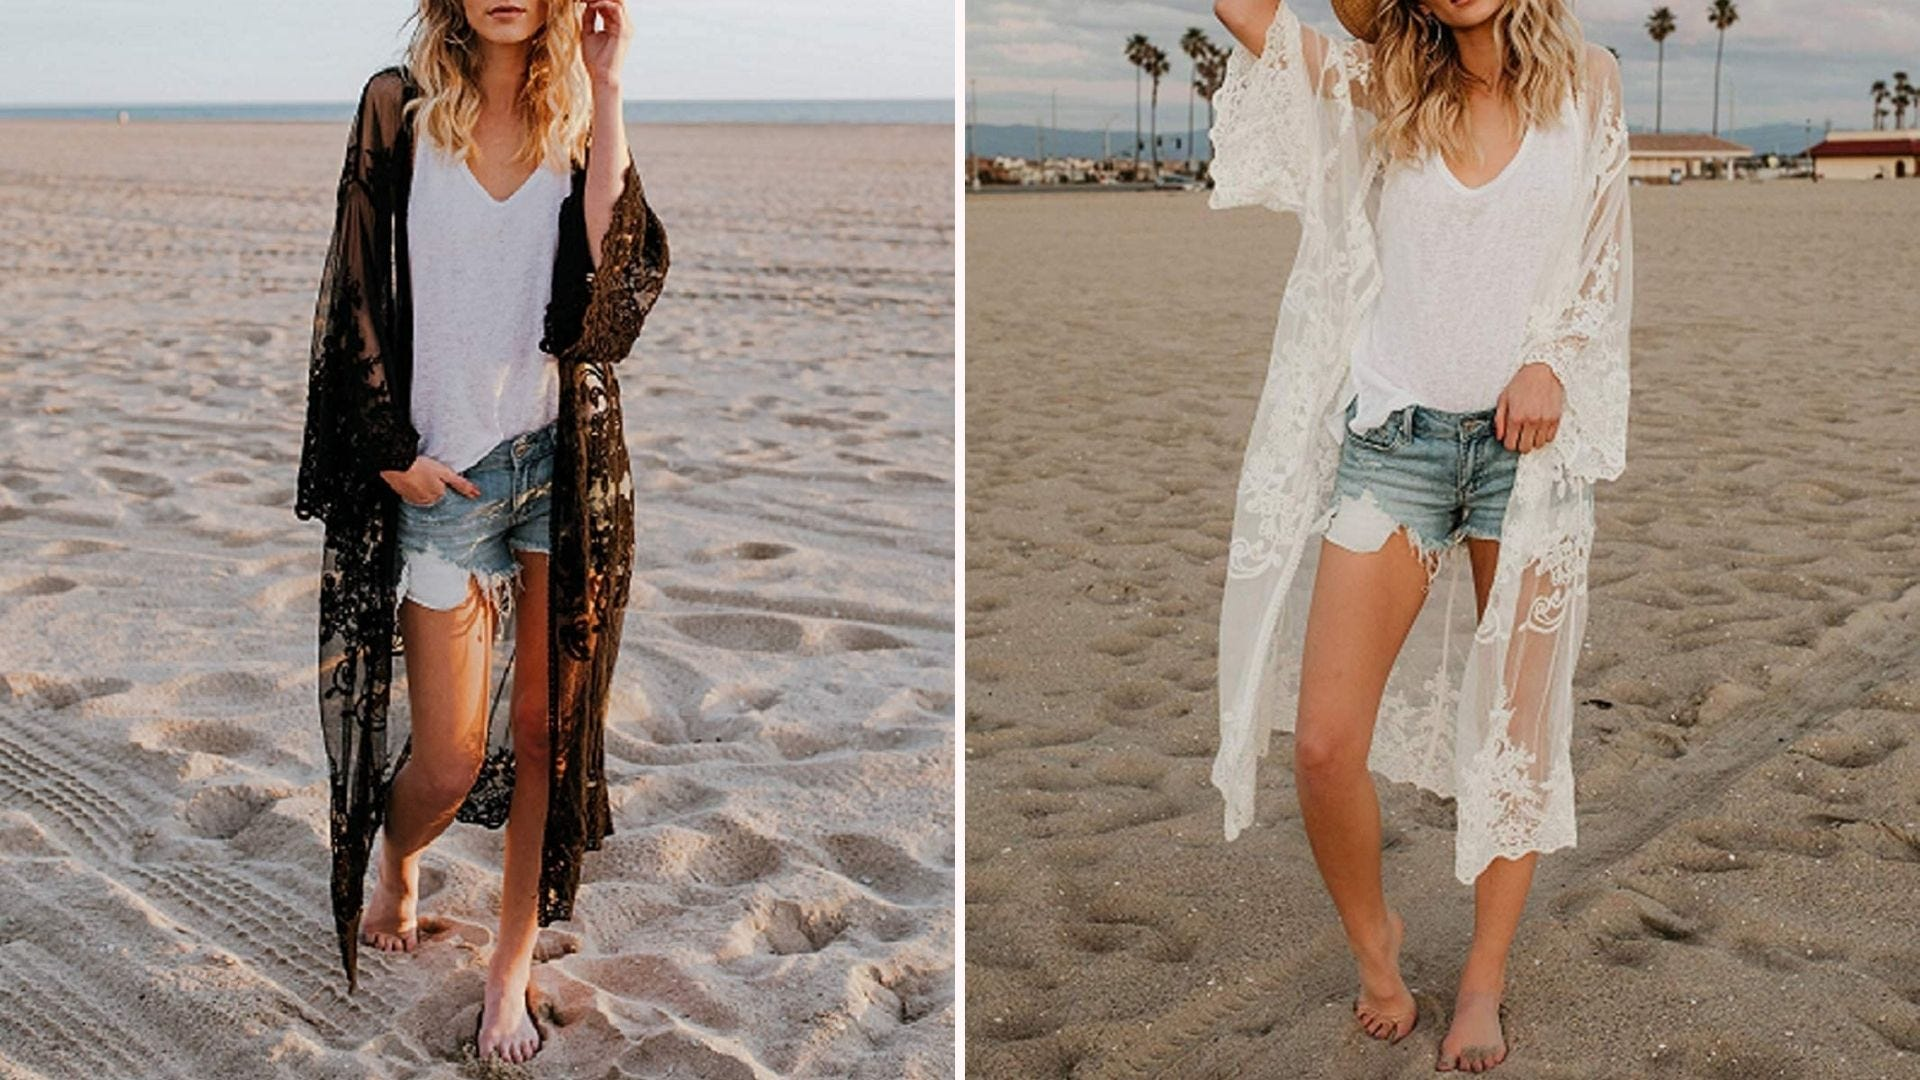 Two women on a beach - one with a black lace coverup, one with a white lace coverup